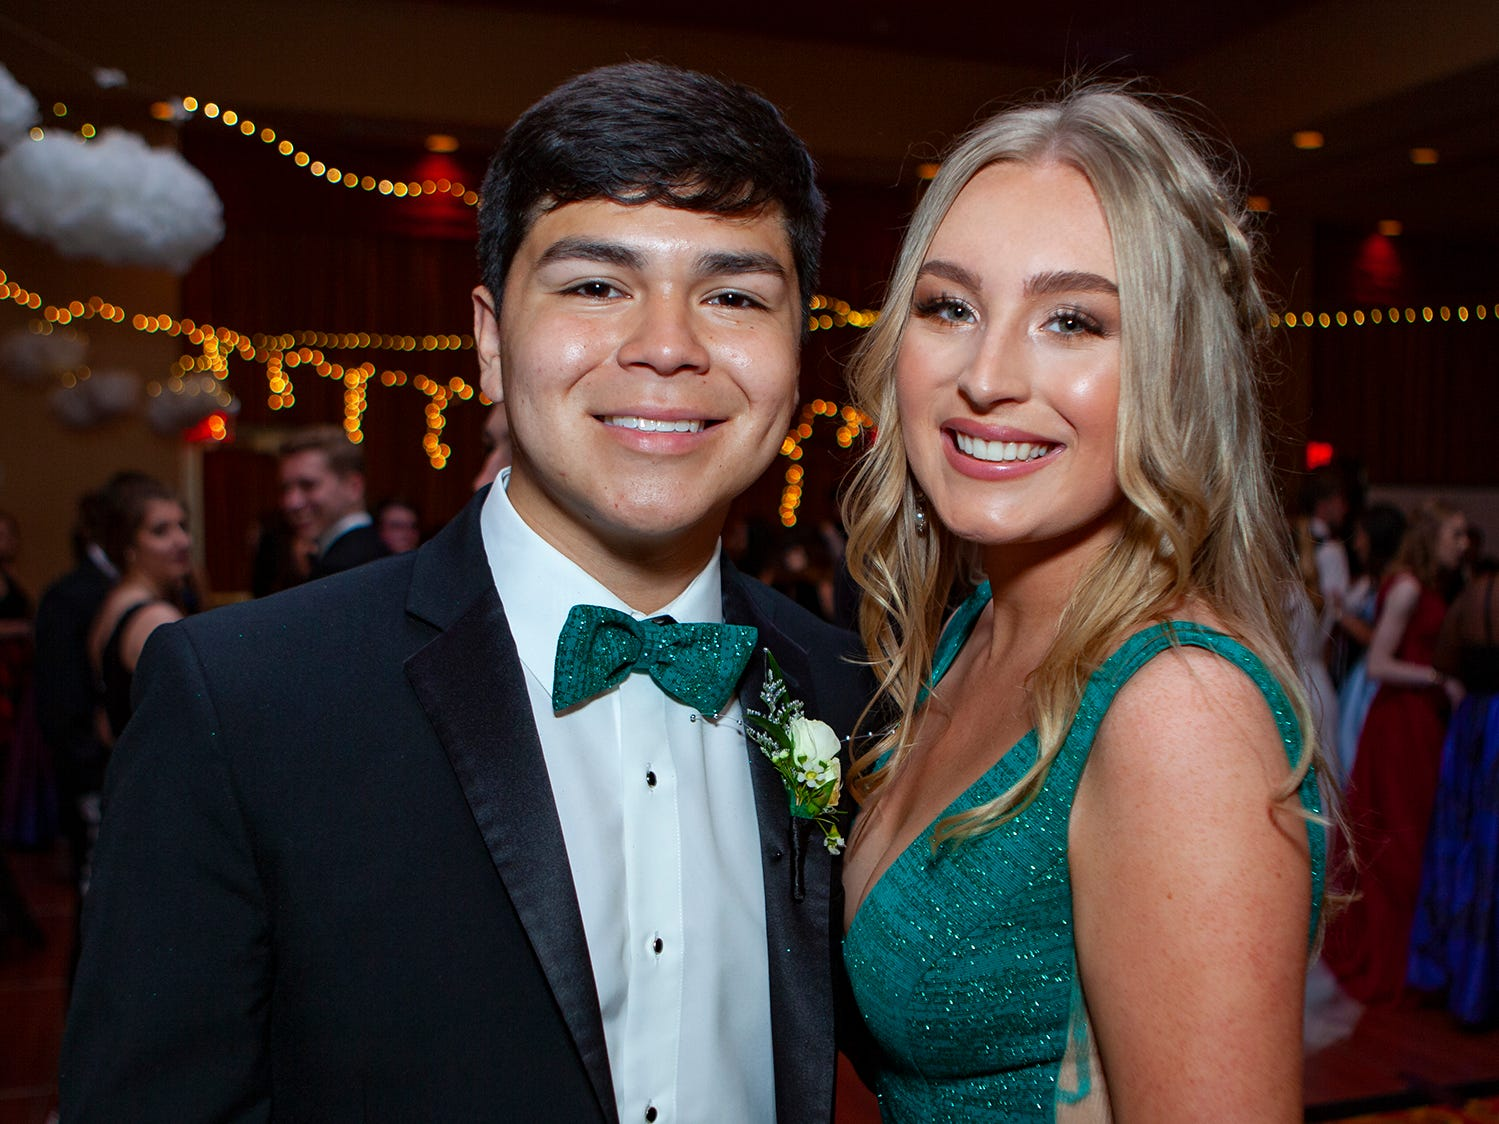 Andres Zaragoza and Piper Taylor at Central Magnet School's 2019 prom on Saturday, April 6 at Embassy Suites in Murfreesboro.